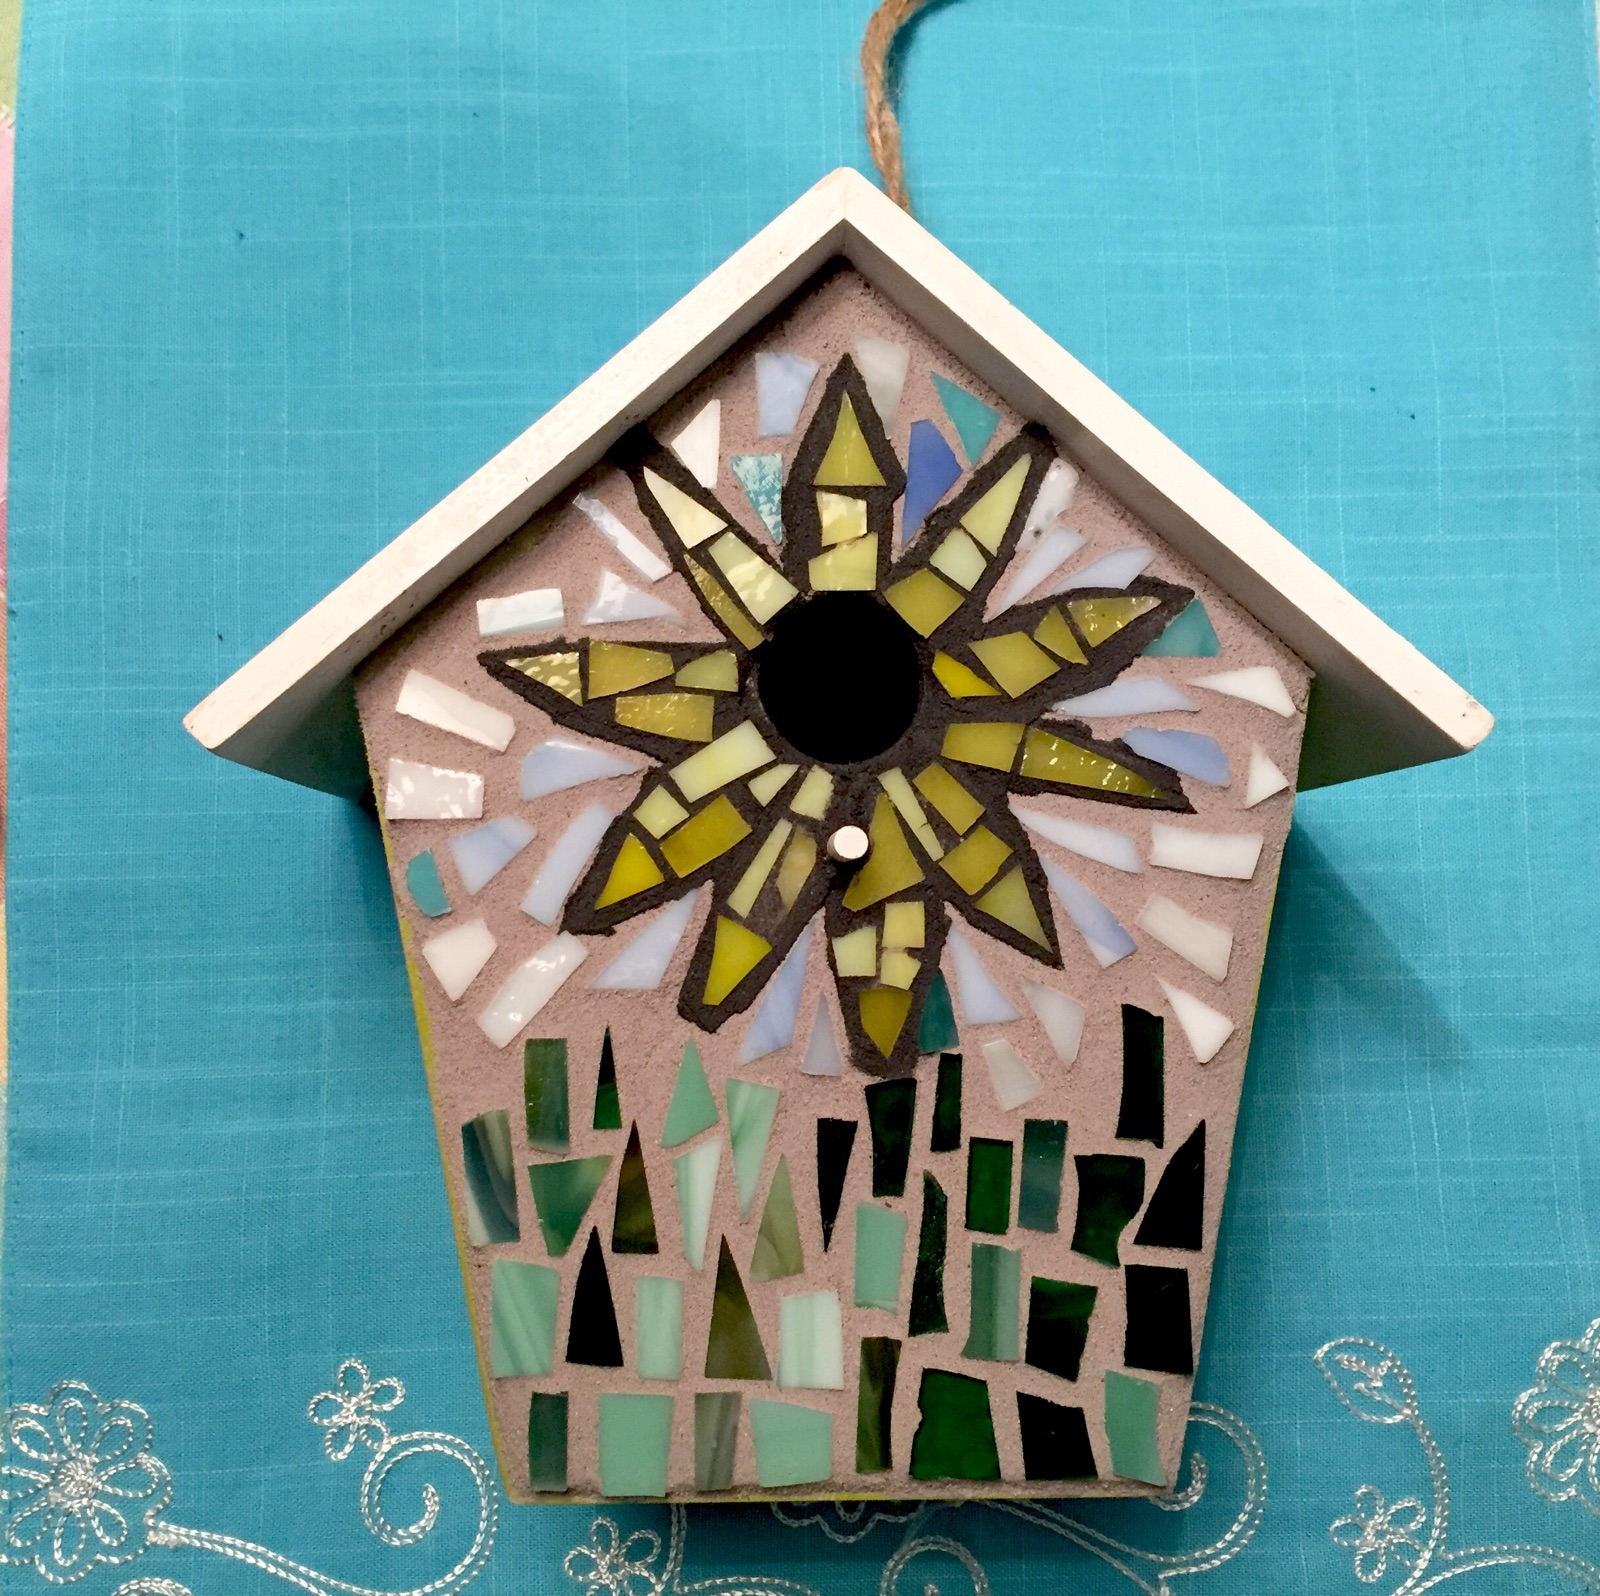 MOSAIC BIRD HOUSE WORKSHOP